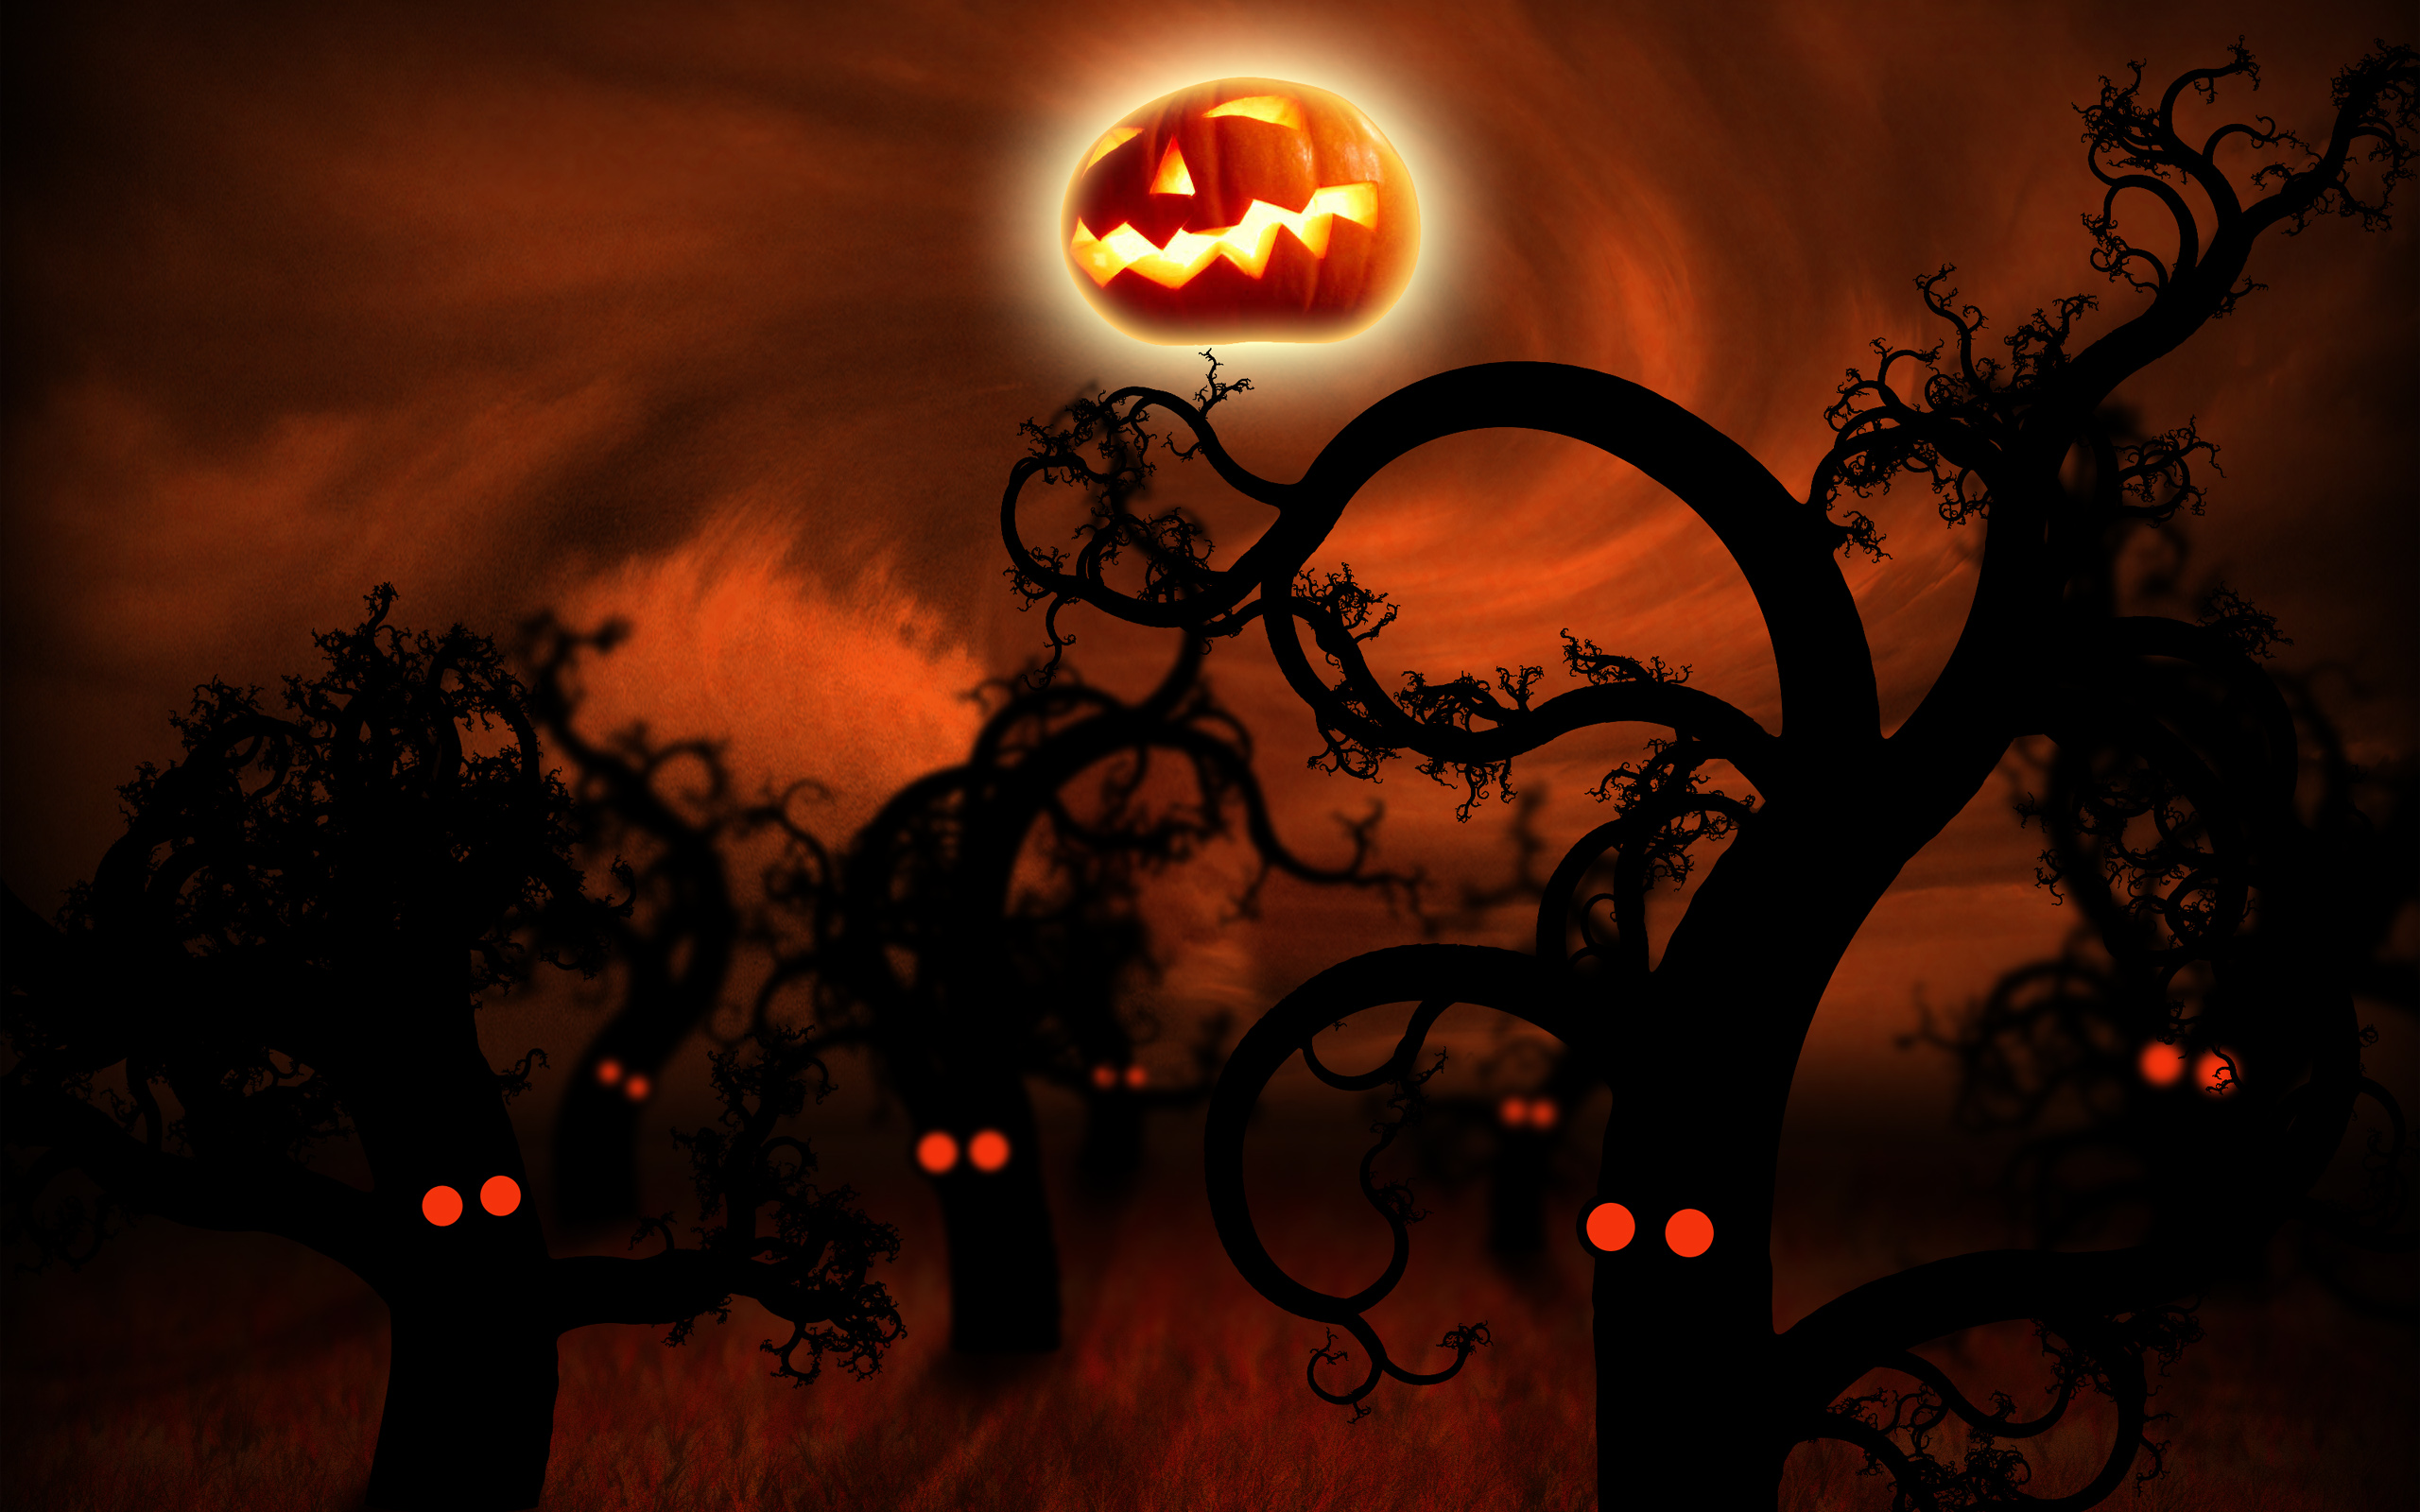 wallpapers halloween 2013 hd wallpapers desktop backgrounds